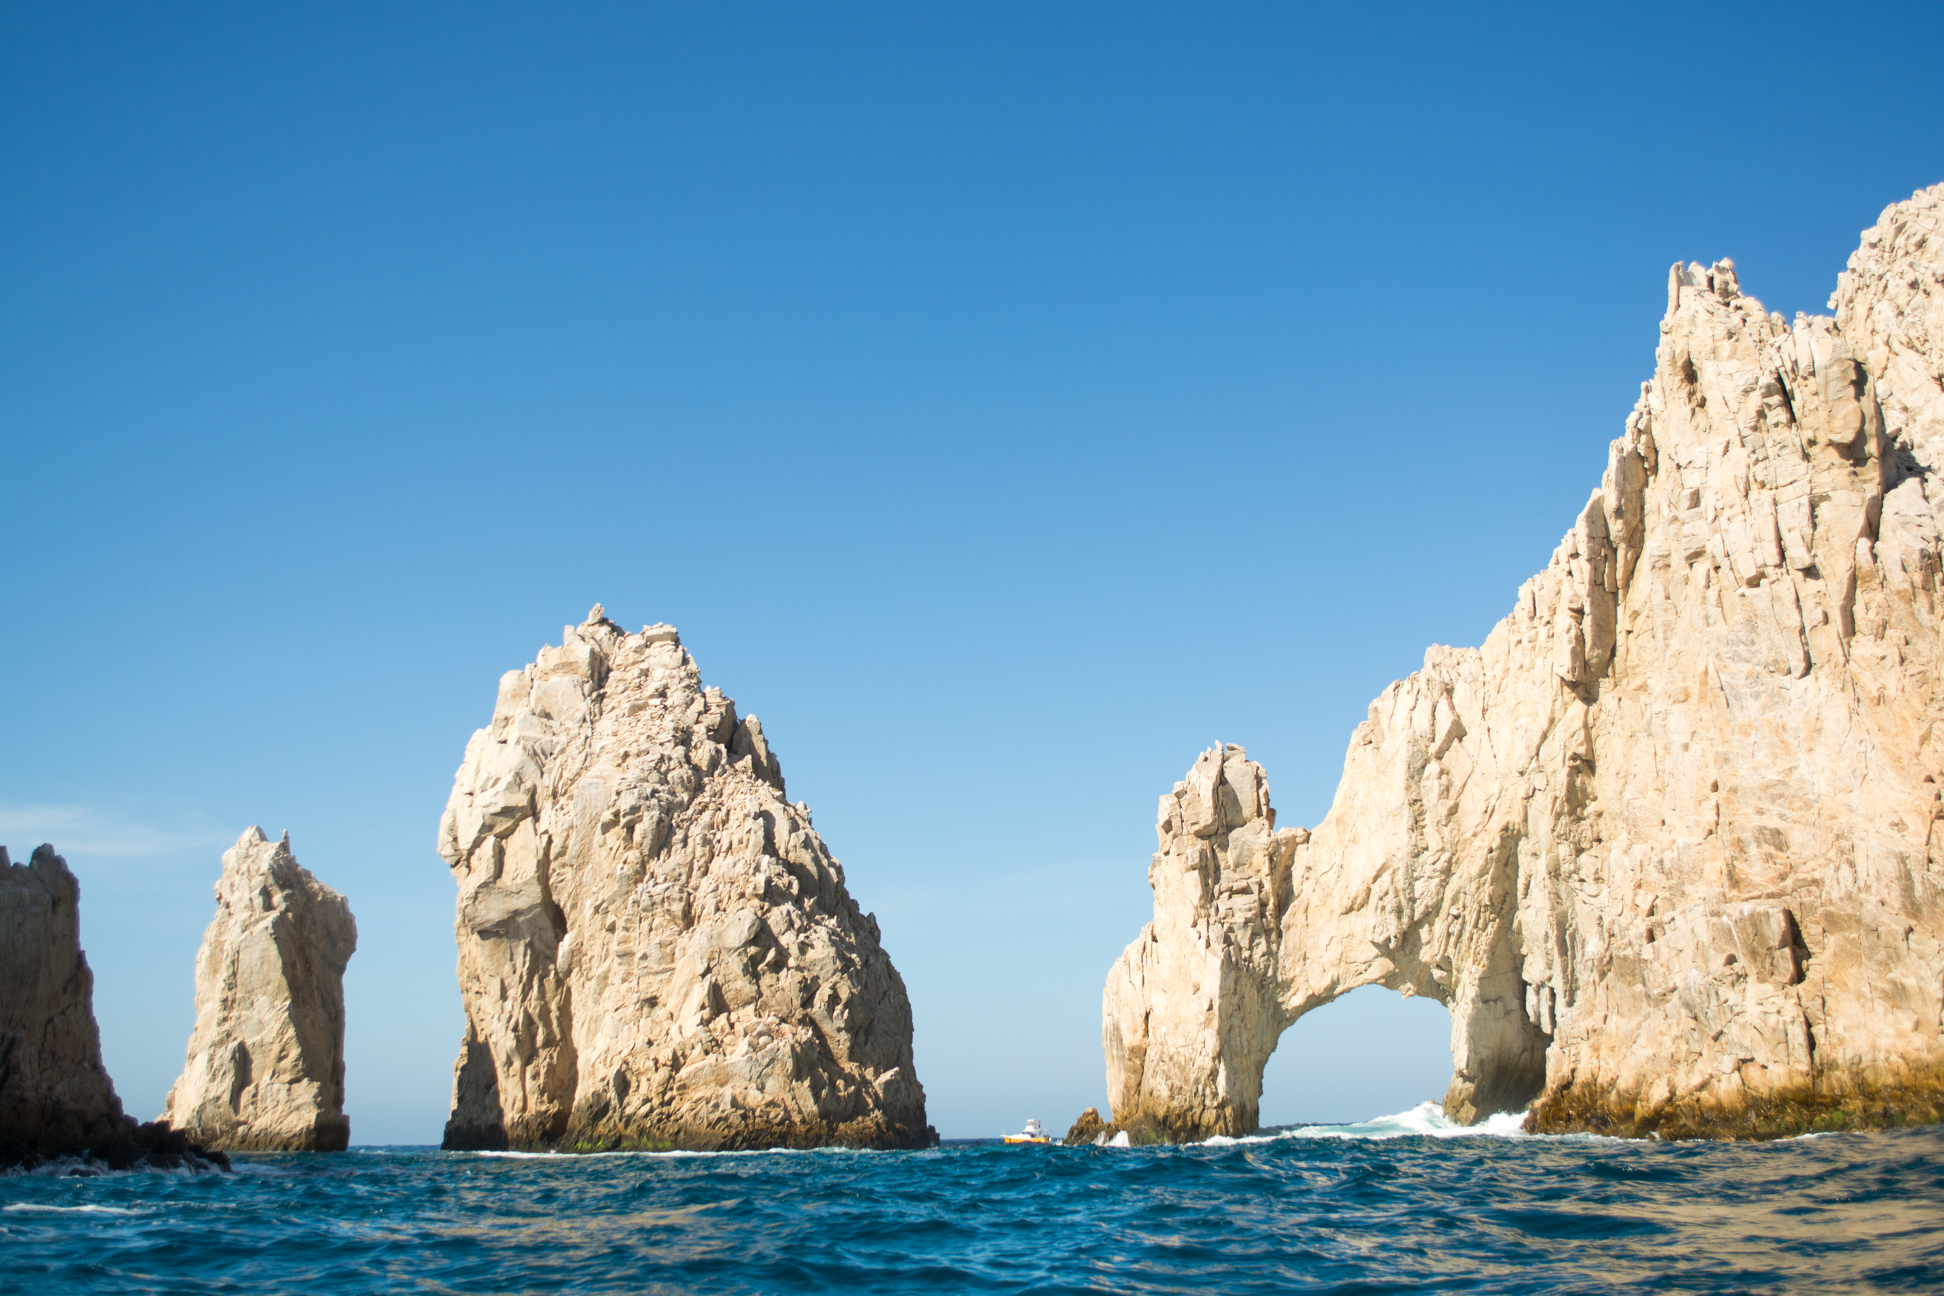 Private Los Cabos kayaking tour of the Arch & Playa del Amor